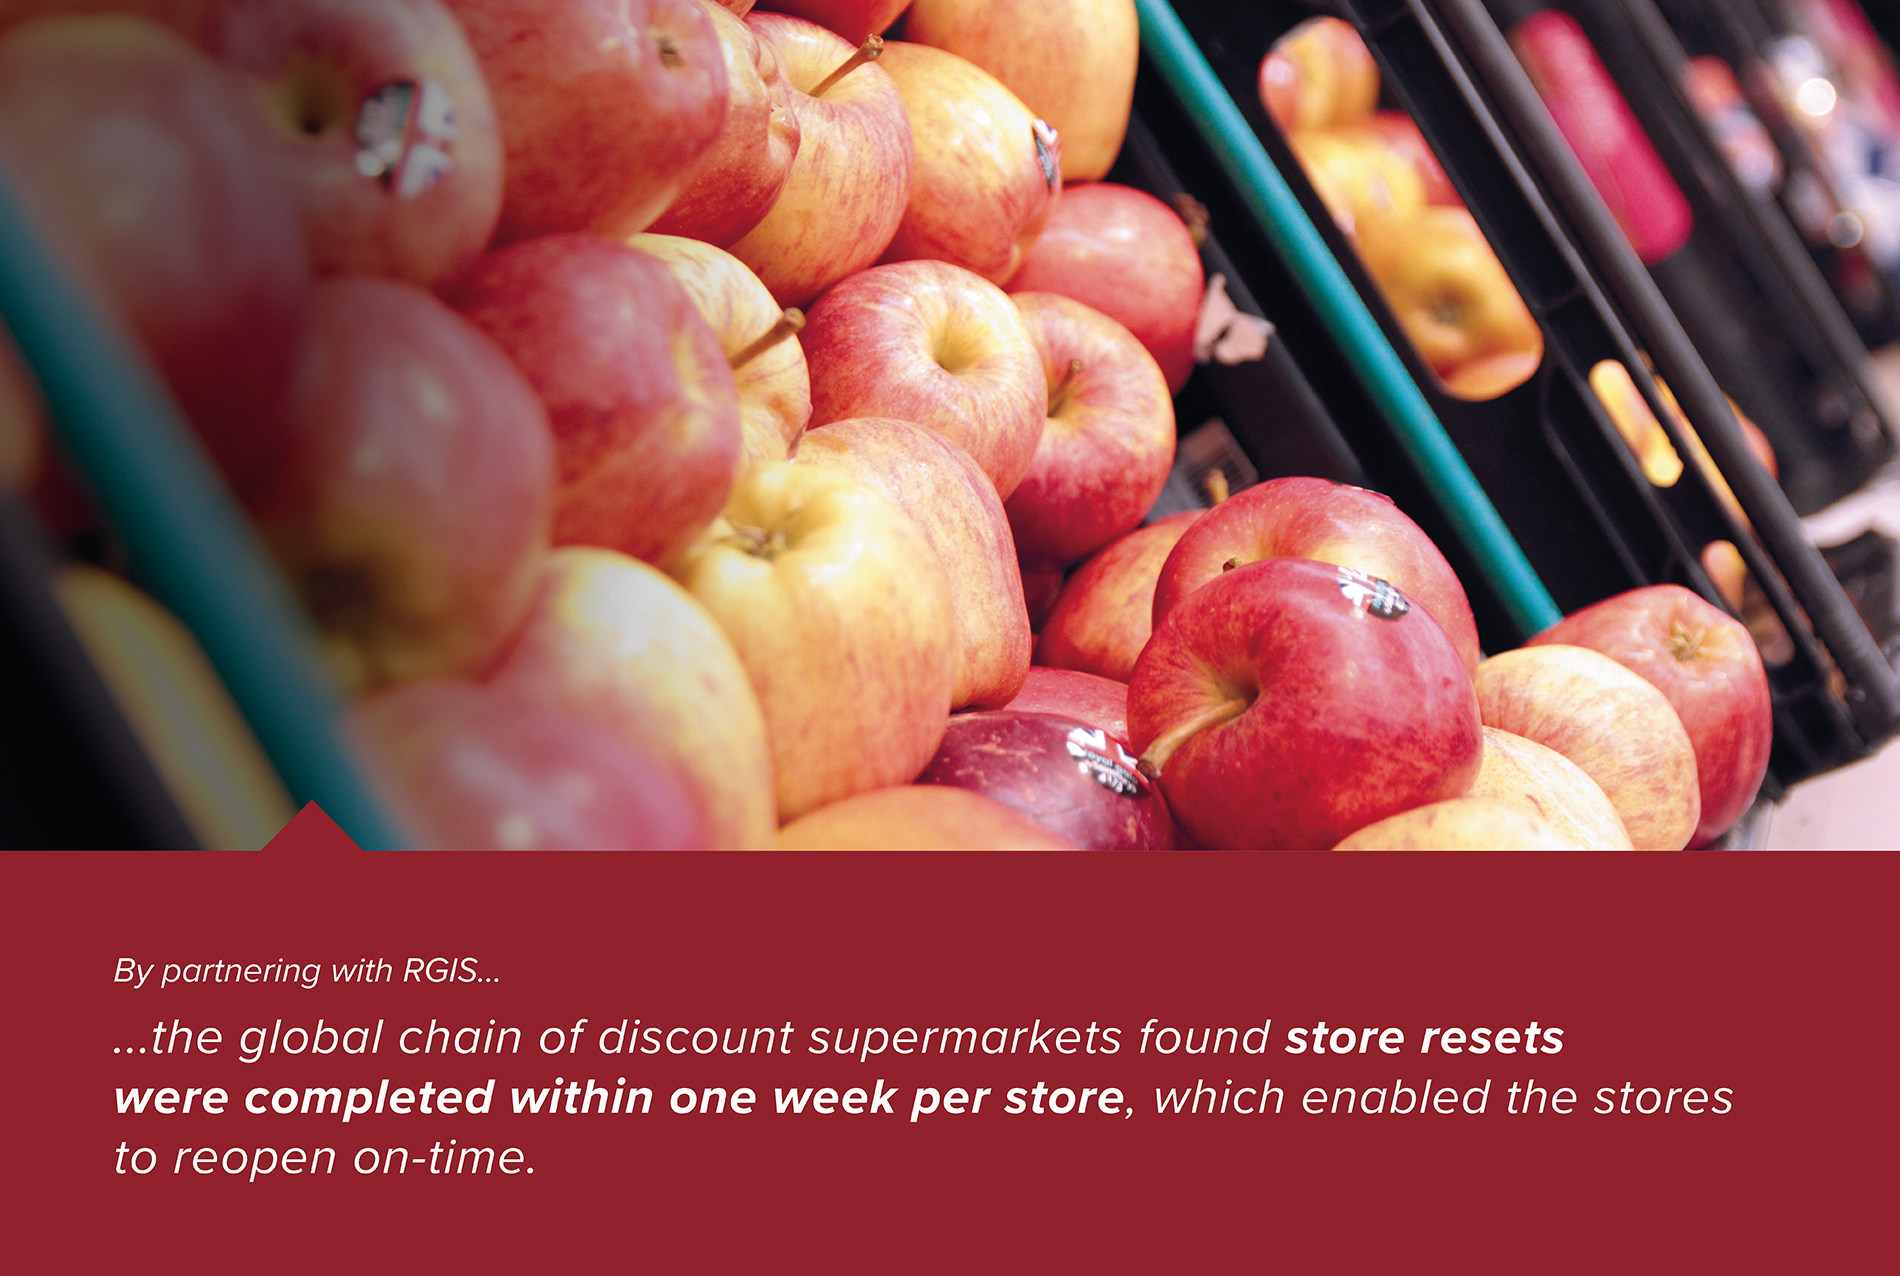 Merchandising support for fresh food - apples